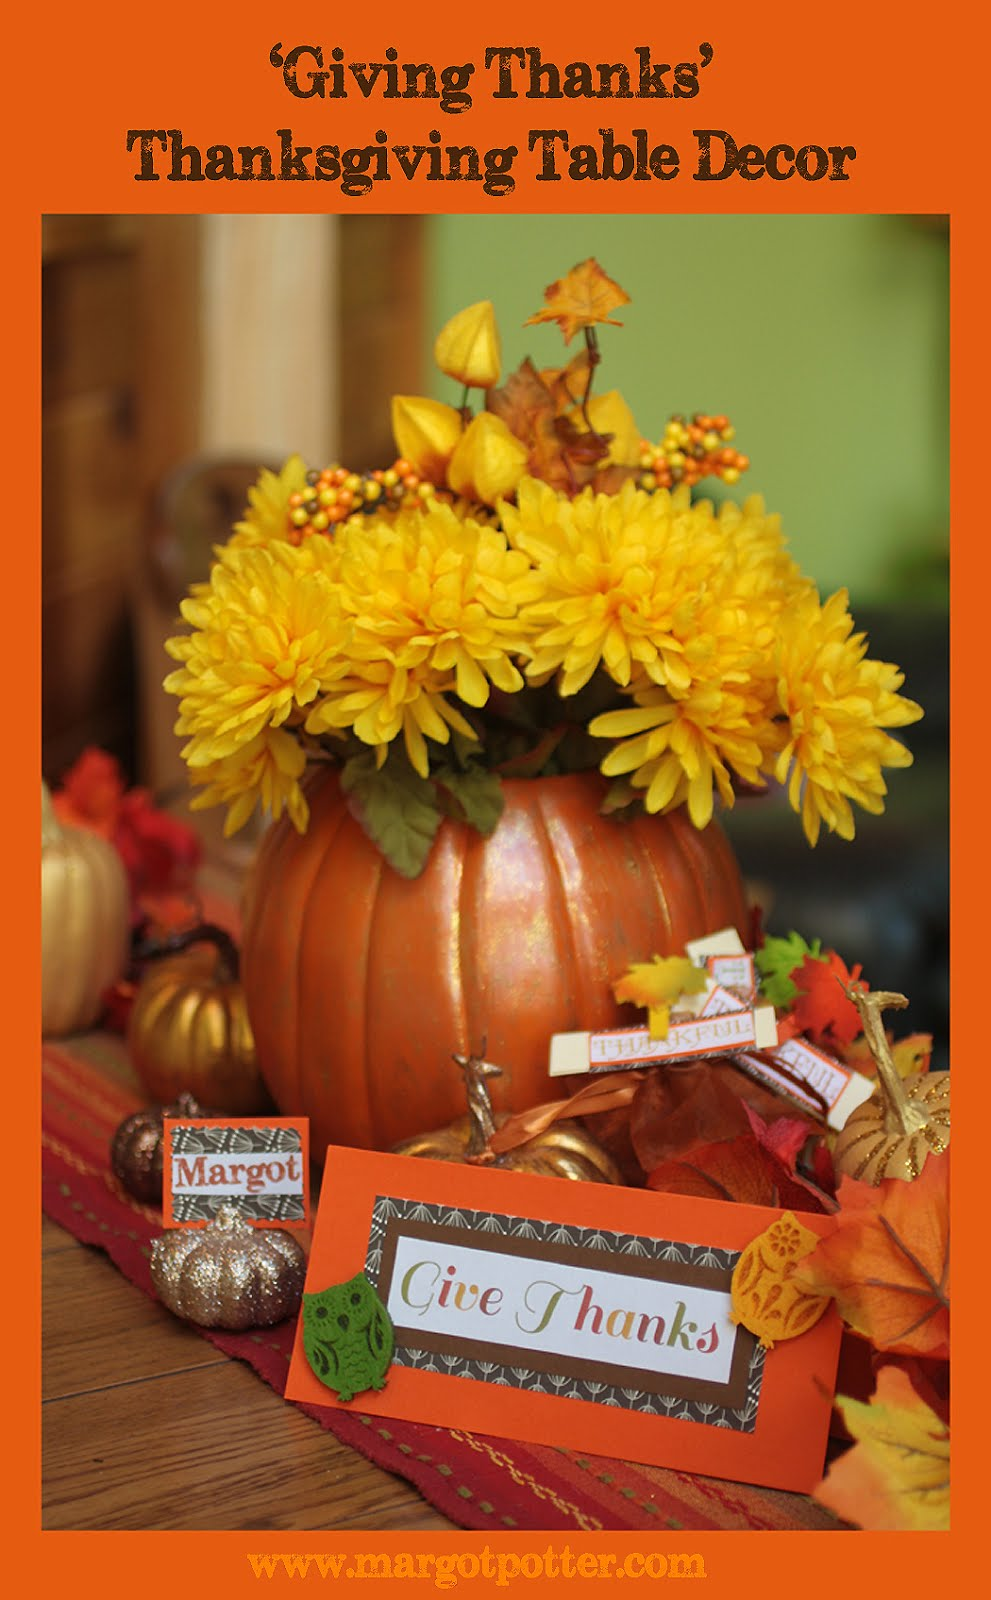 Ilovetocreate blog giving thanks diy thanksgiving table decor Thanksgiving table decorations homemade